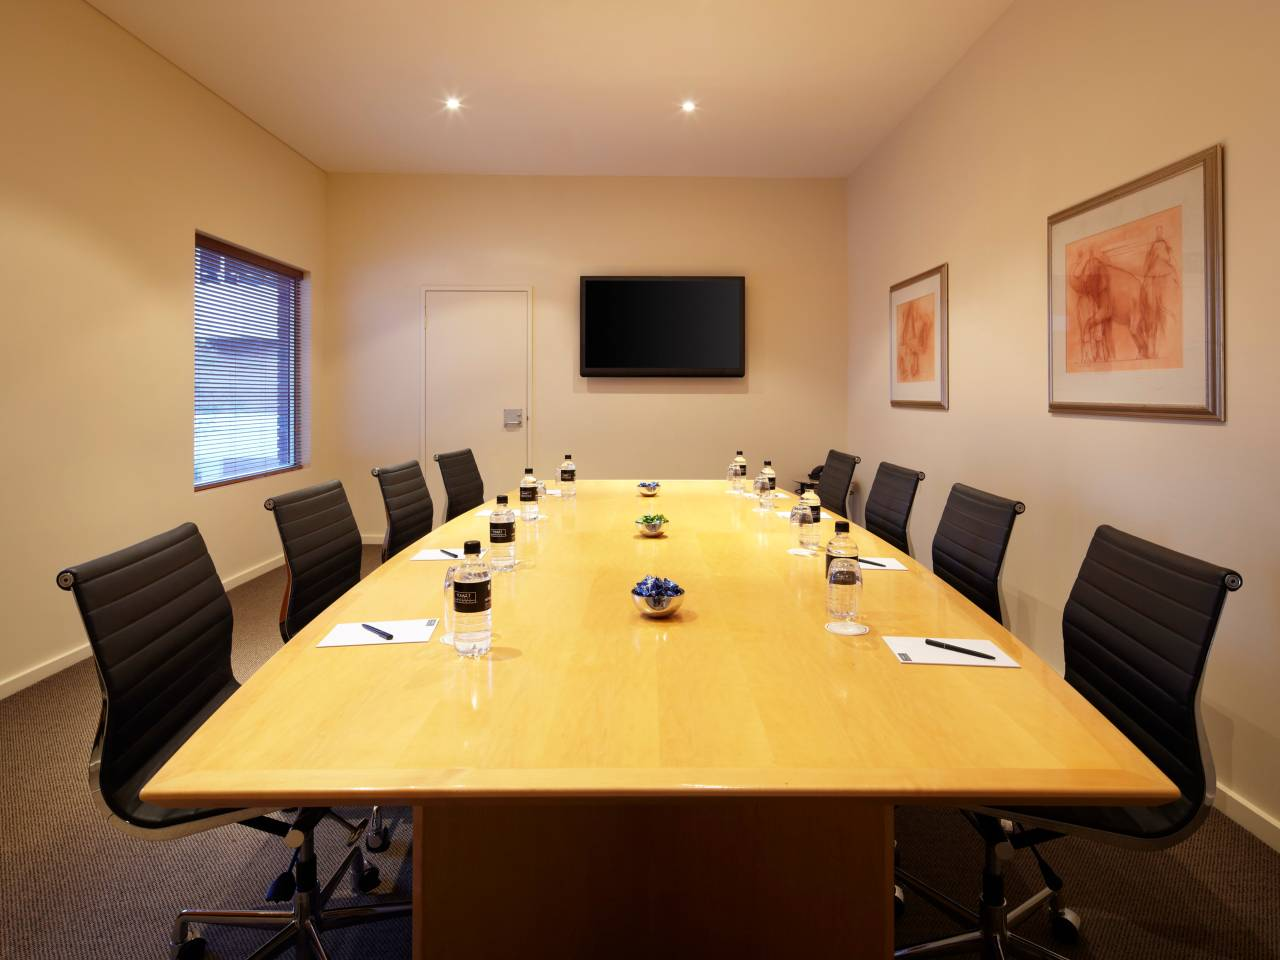 Boardroom Table And Chairs At A Hotel Meeting Room